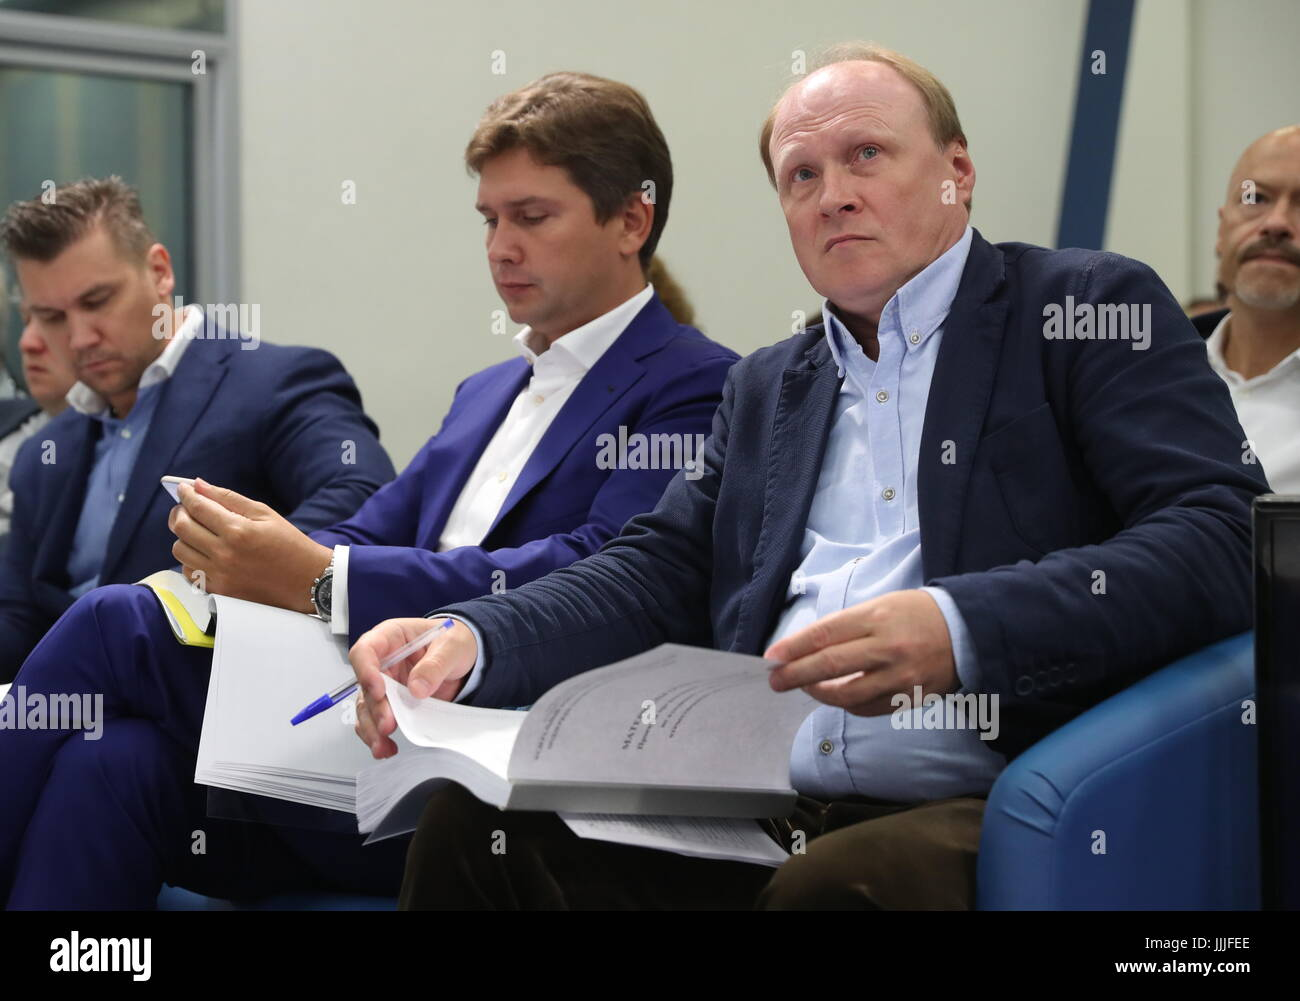 MOSCOW, RUSSIA - JULY 20, 2017: Vladimir Tolstoi and Anton Malyshev (R-L), chairman of the Board of Trustees and - Stock Image